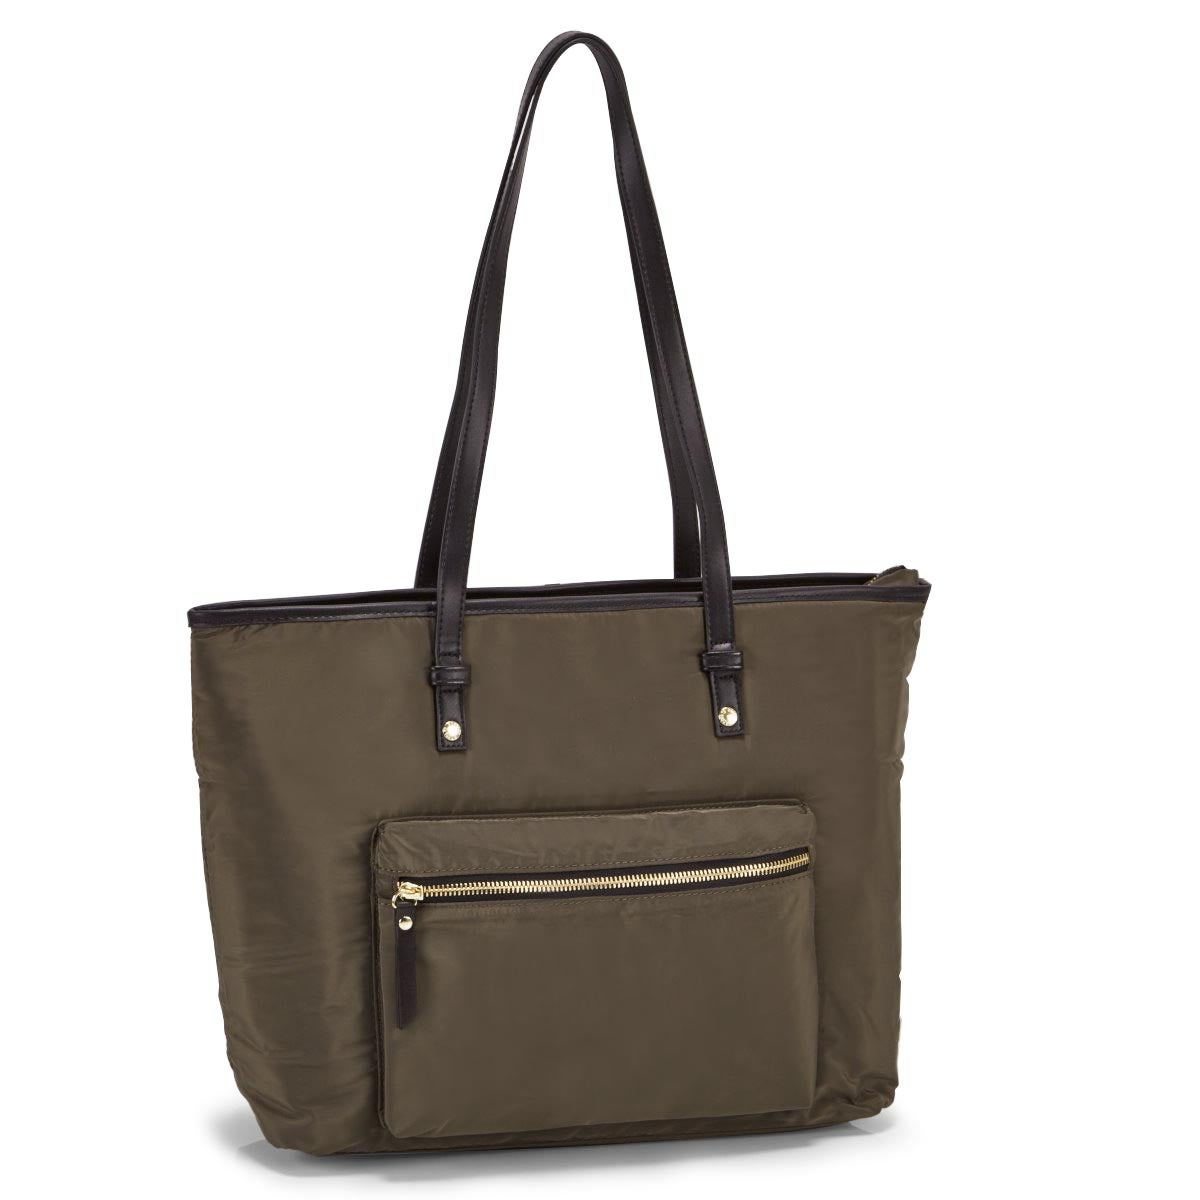 Lds Roots73 khaki large tote bag